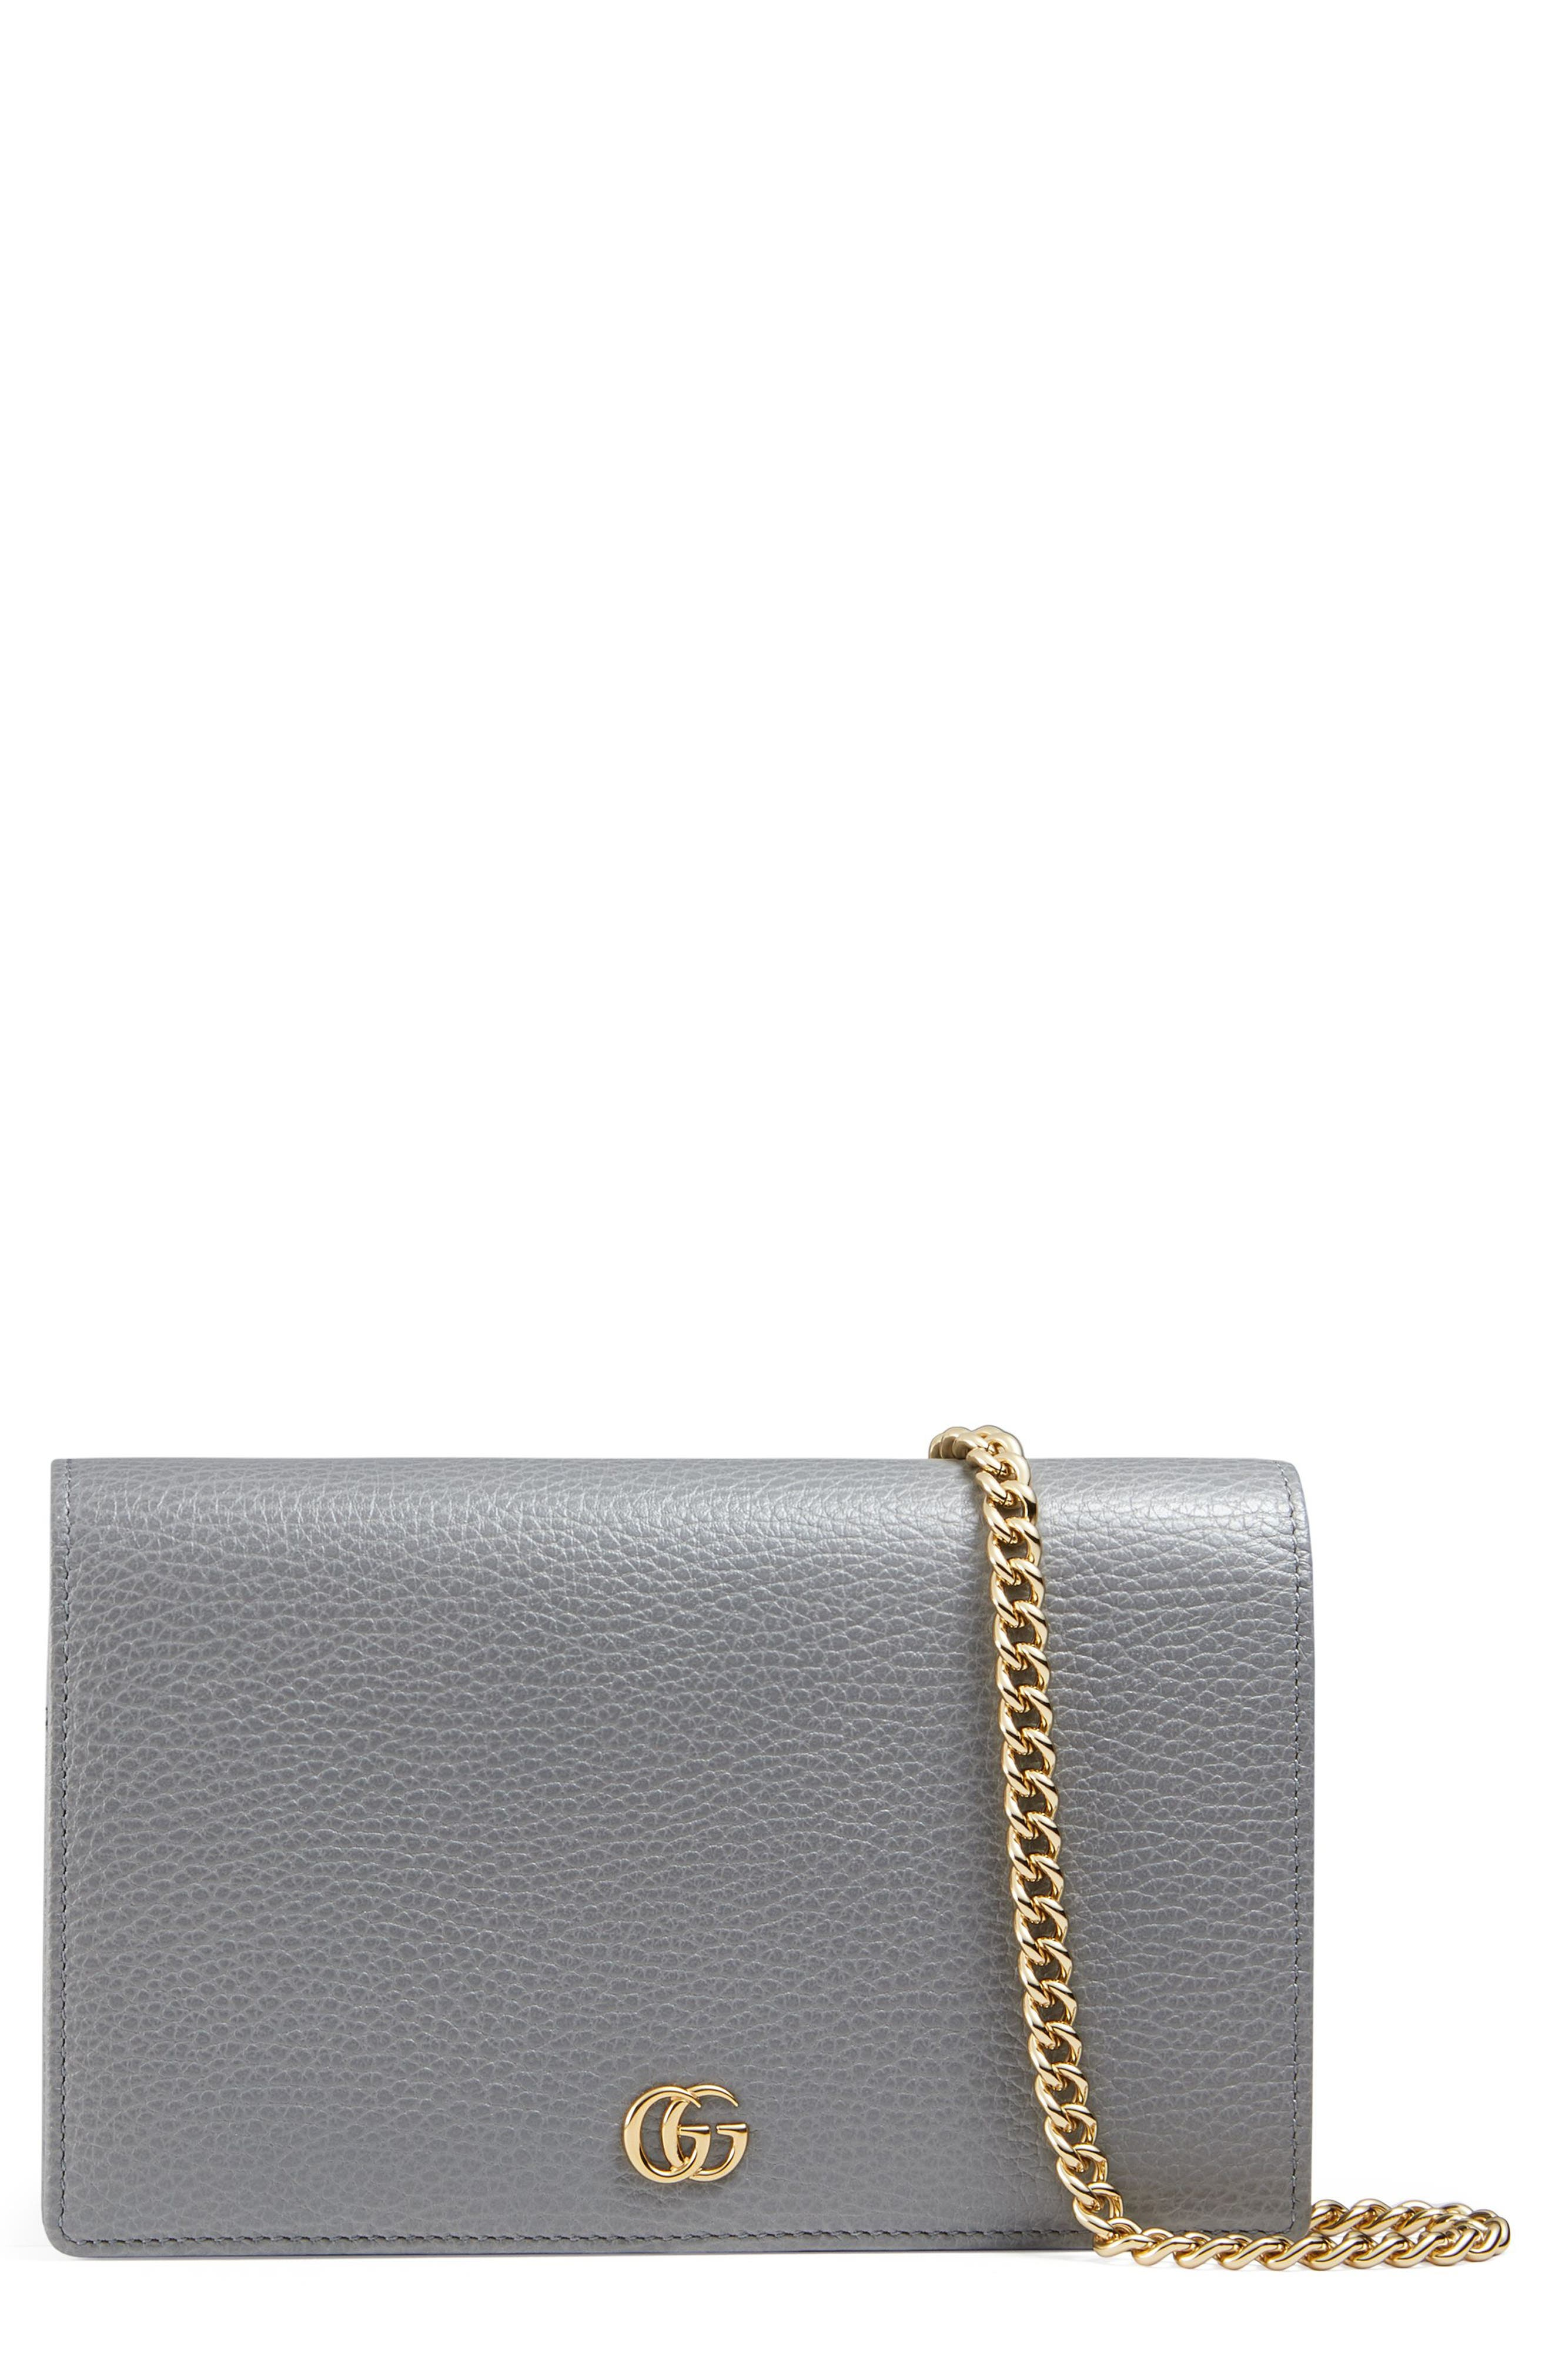 Main Image - Gucci Petite Marmont Leather Wallet on a Chain